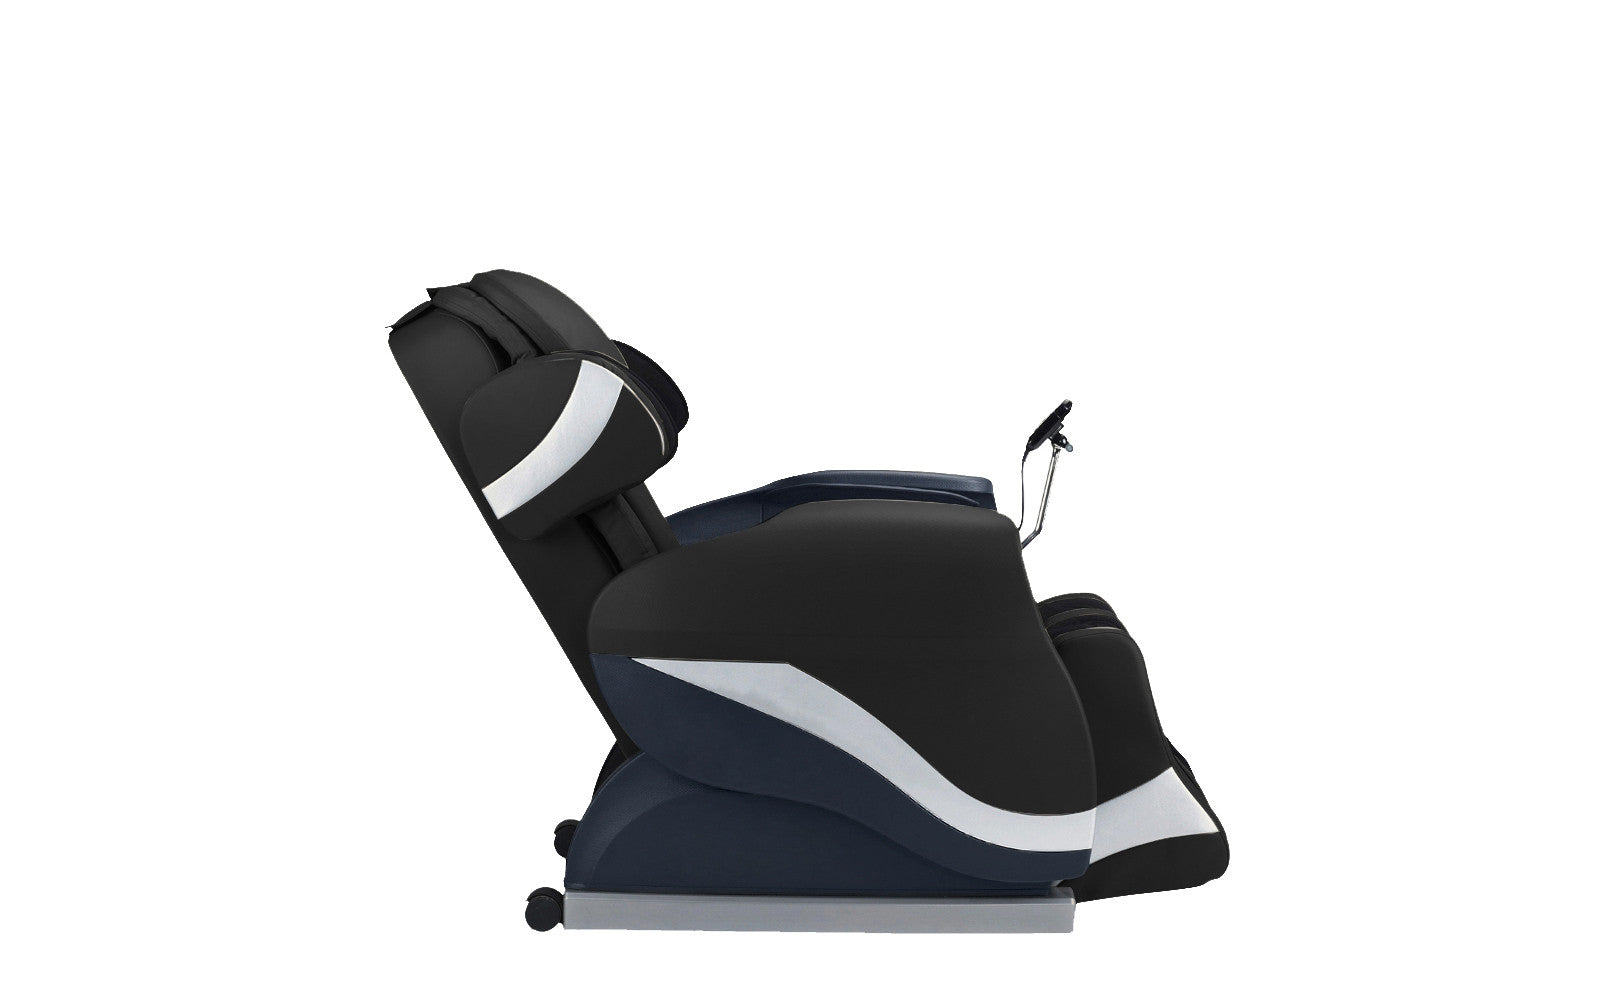 ... Atlas Zero Gravity Massage Recliner Profile ...